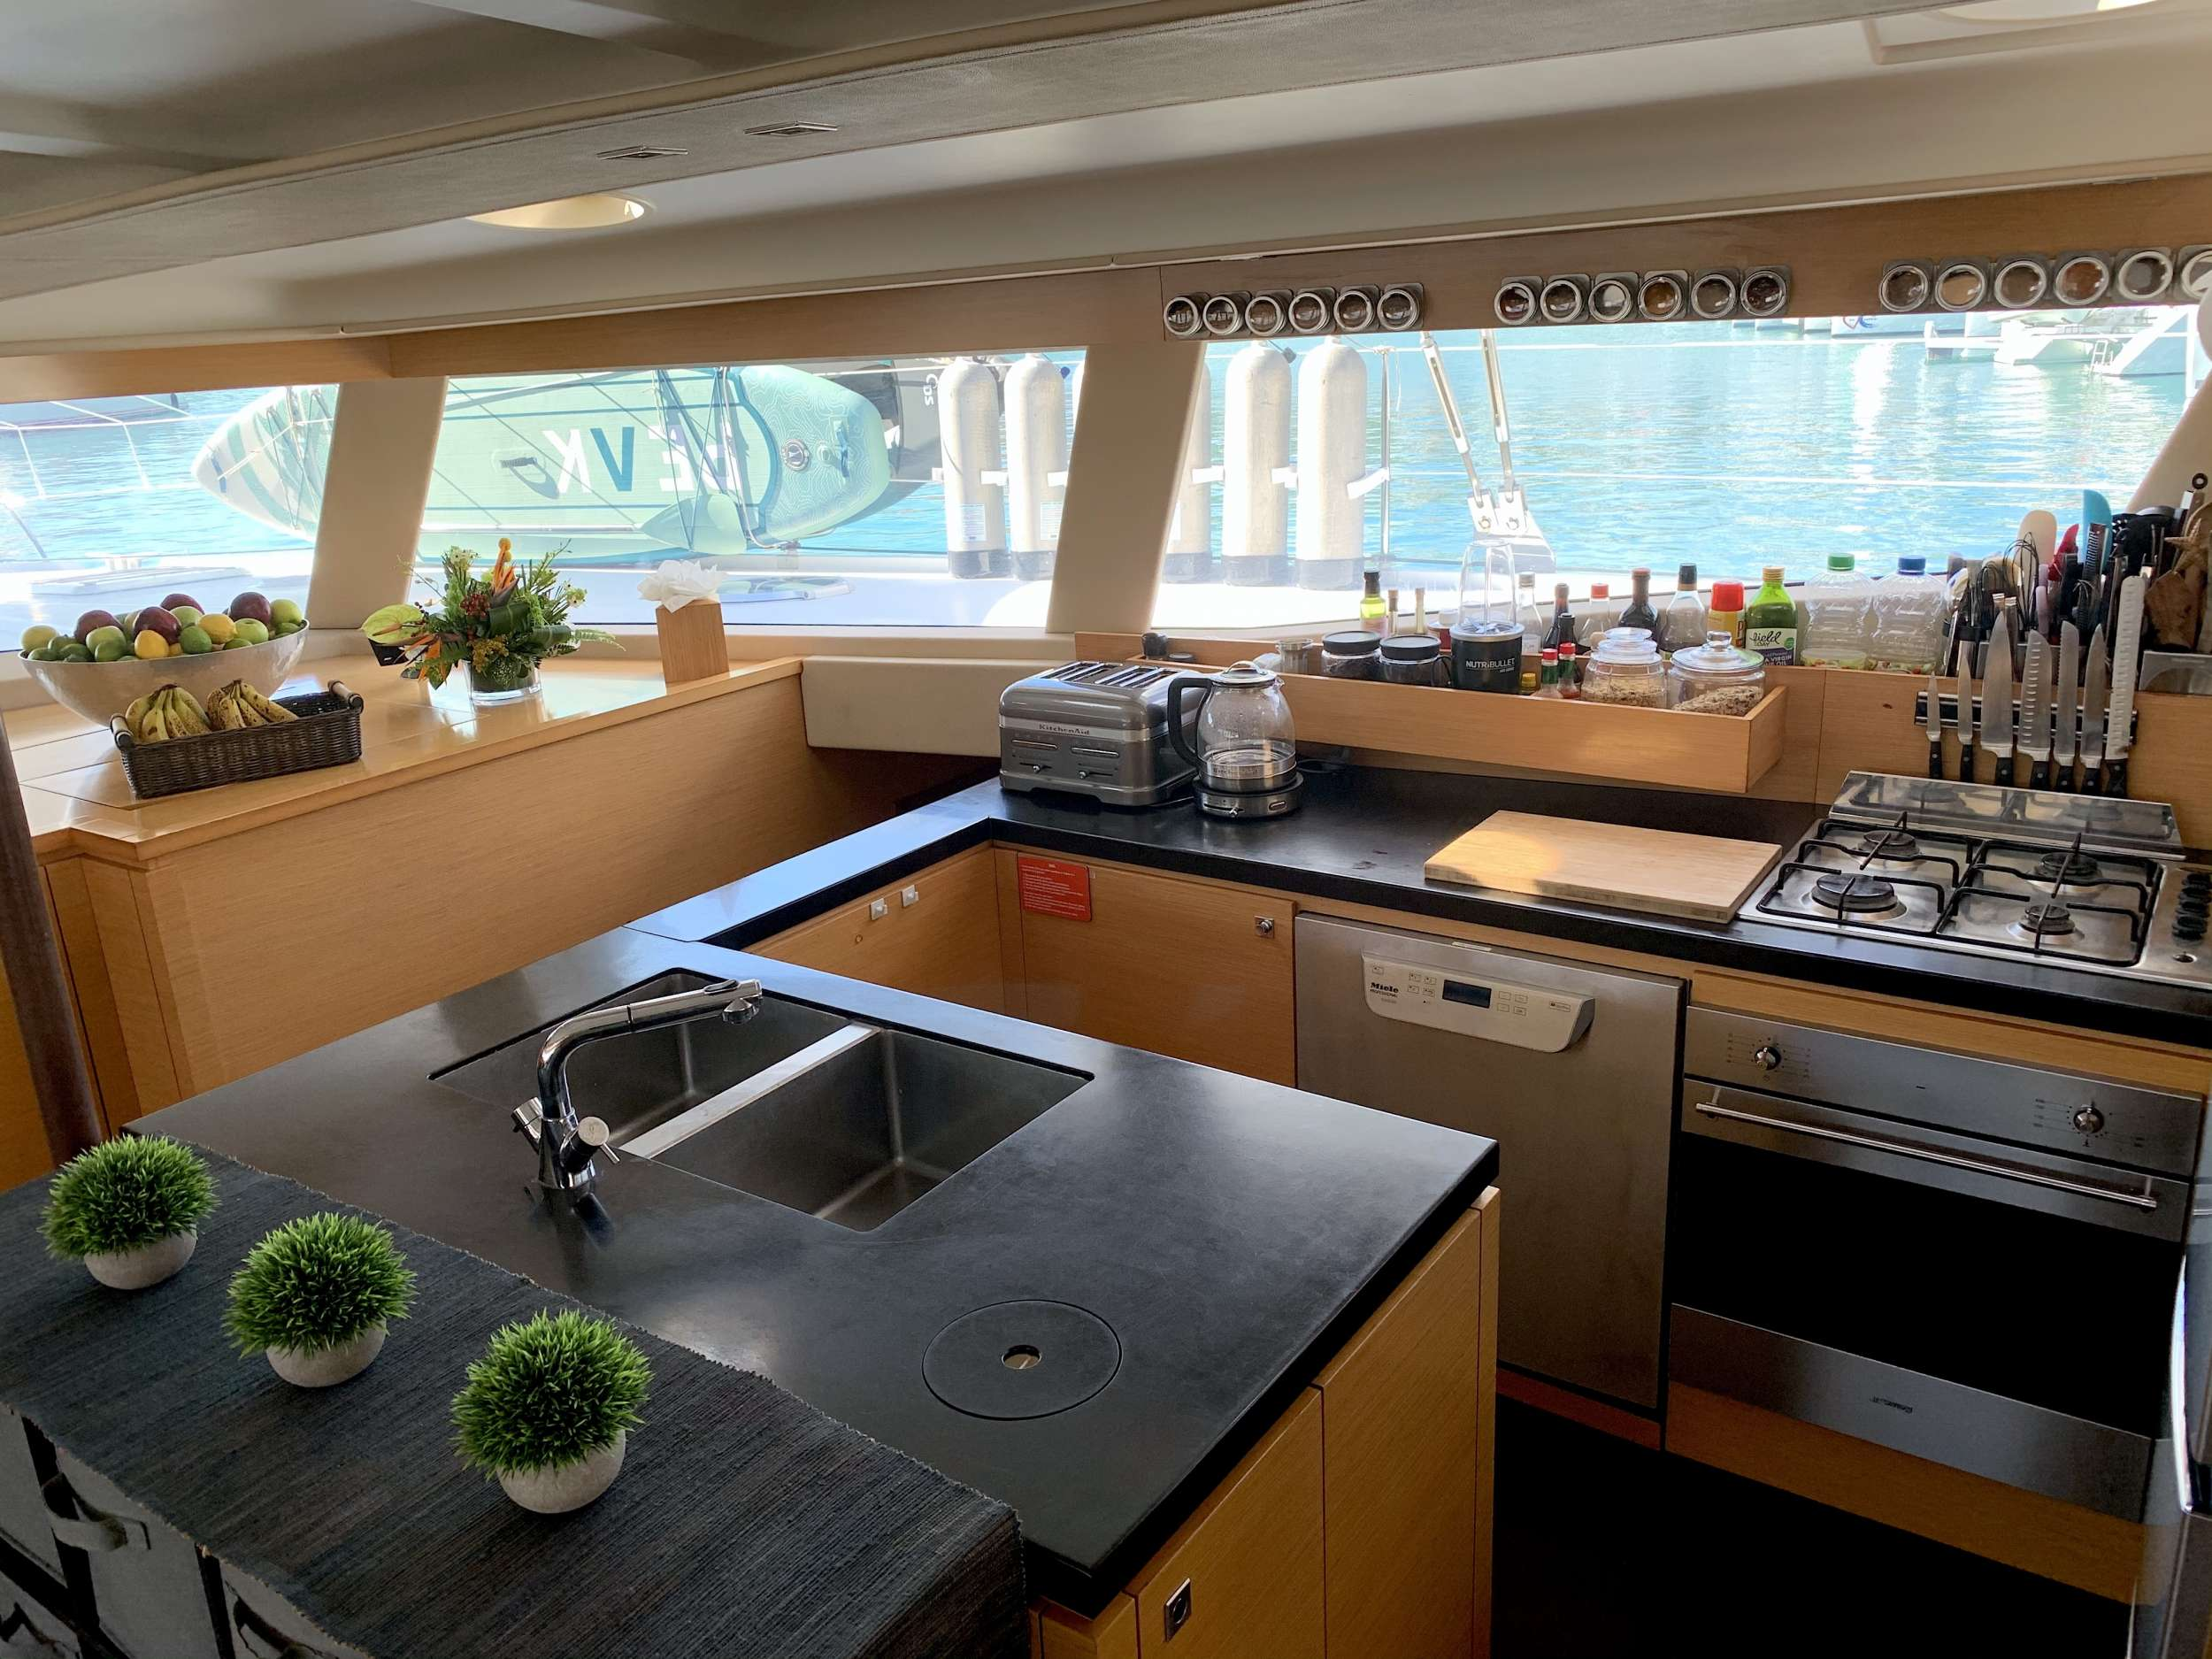 Galley and Coffee Station